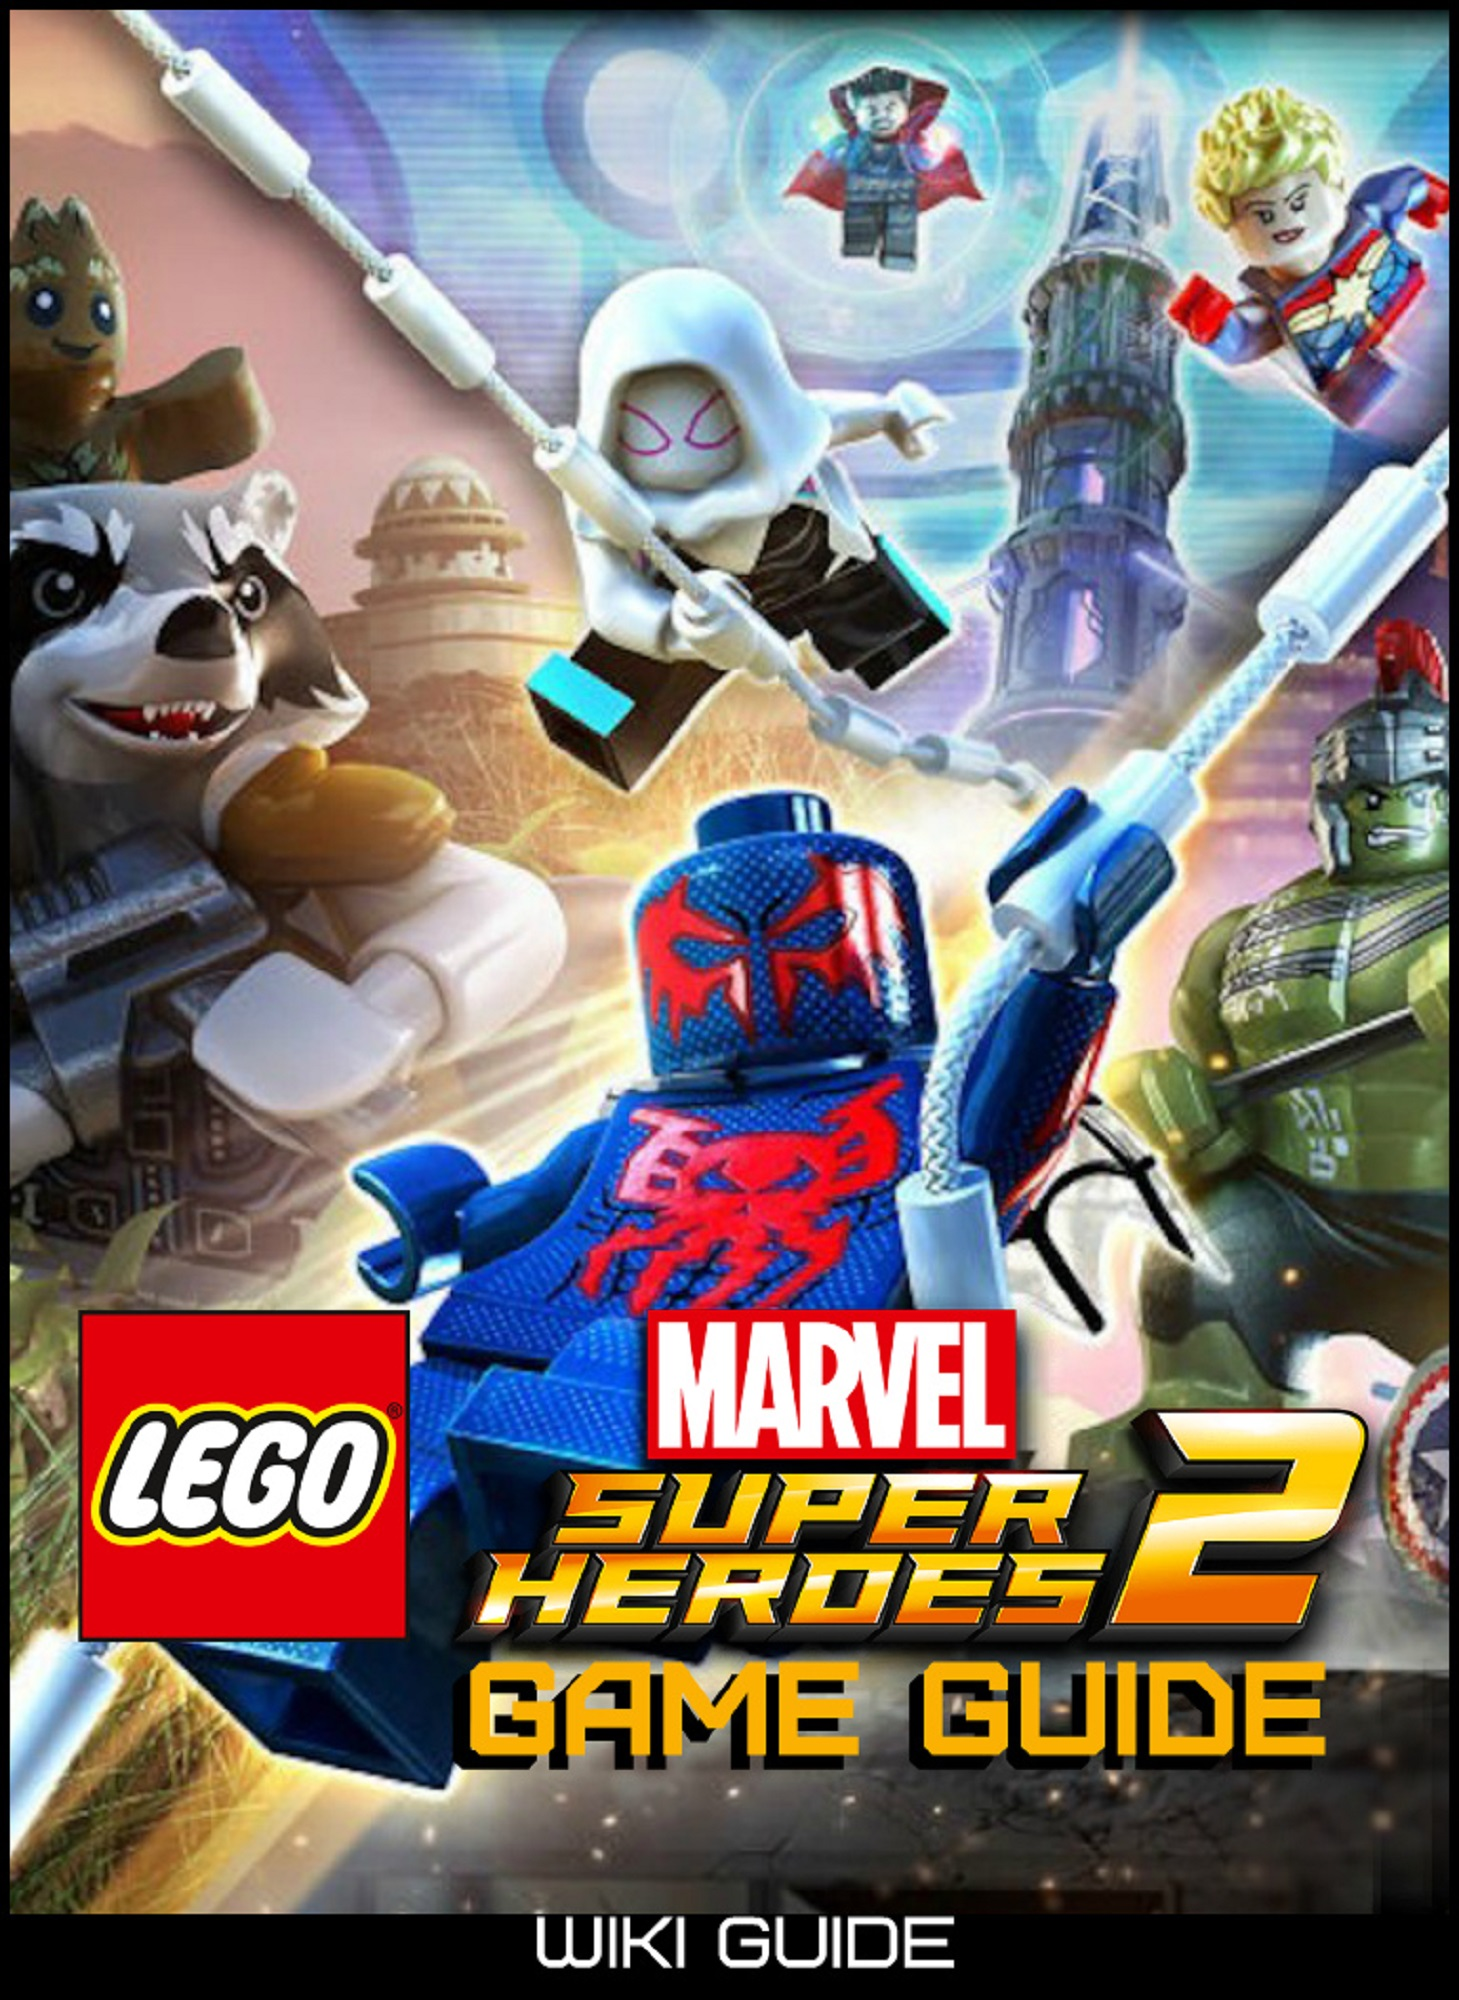 Smashwords Lego Marvel Super Heroes 2 Game Guide A Book By Wiki